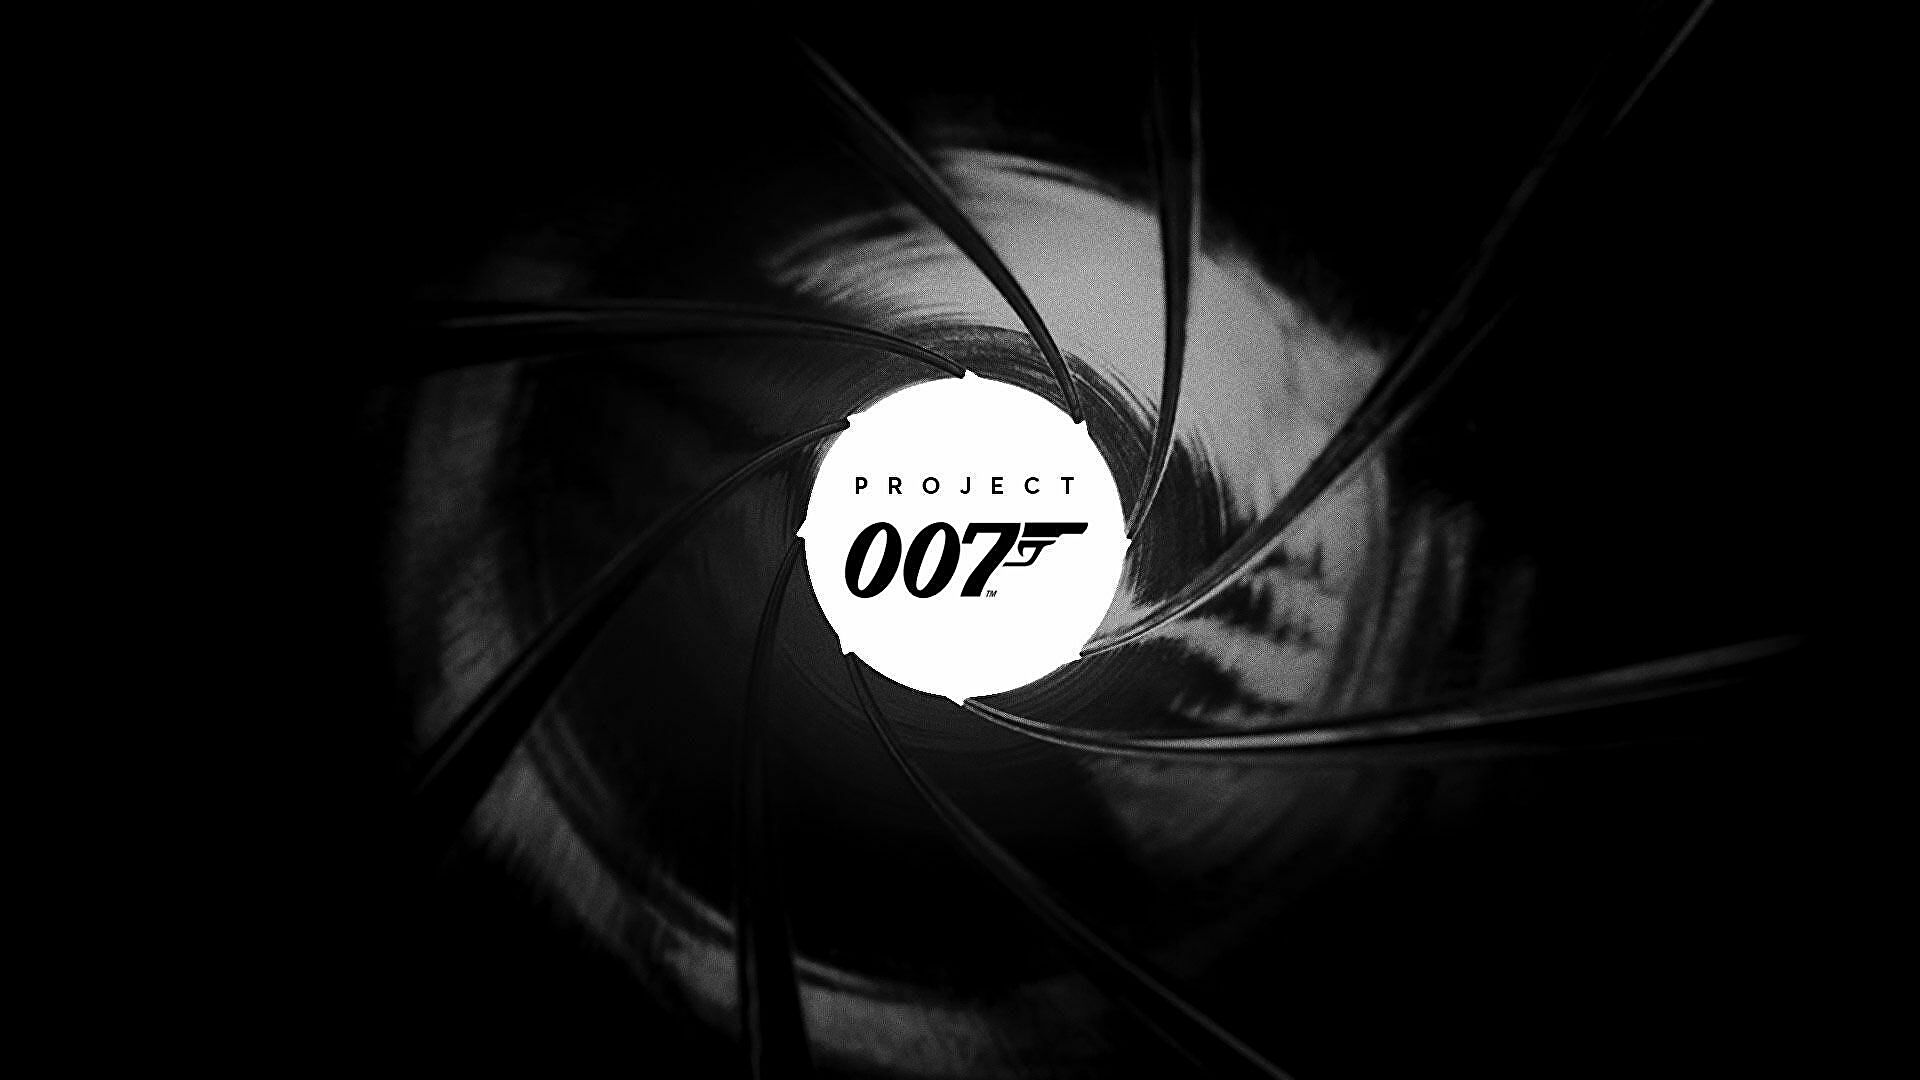 IO Interactive's Project 007 could be the beginning of a Bond trilogy